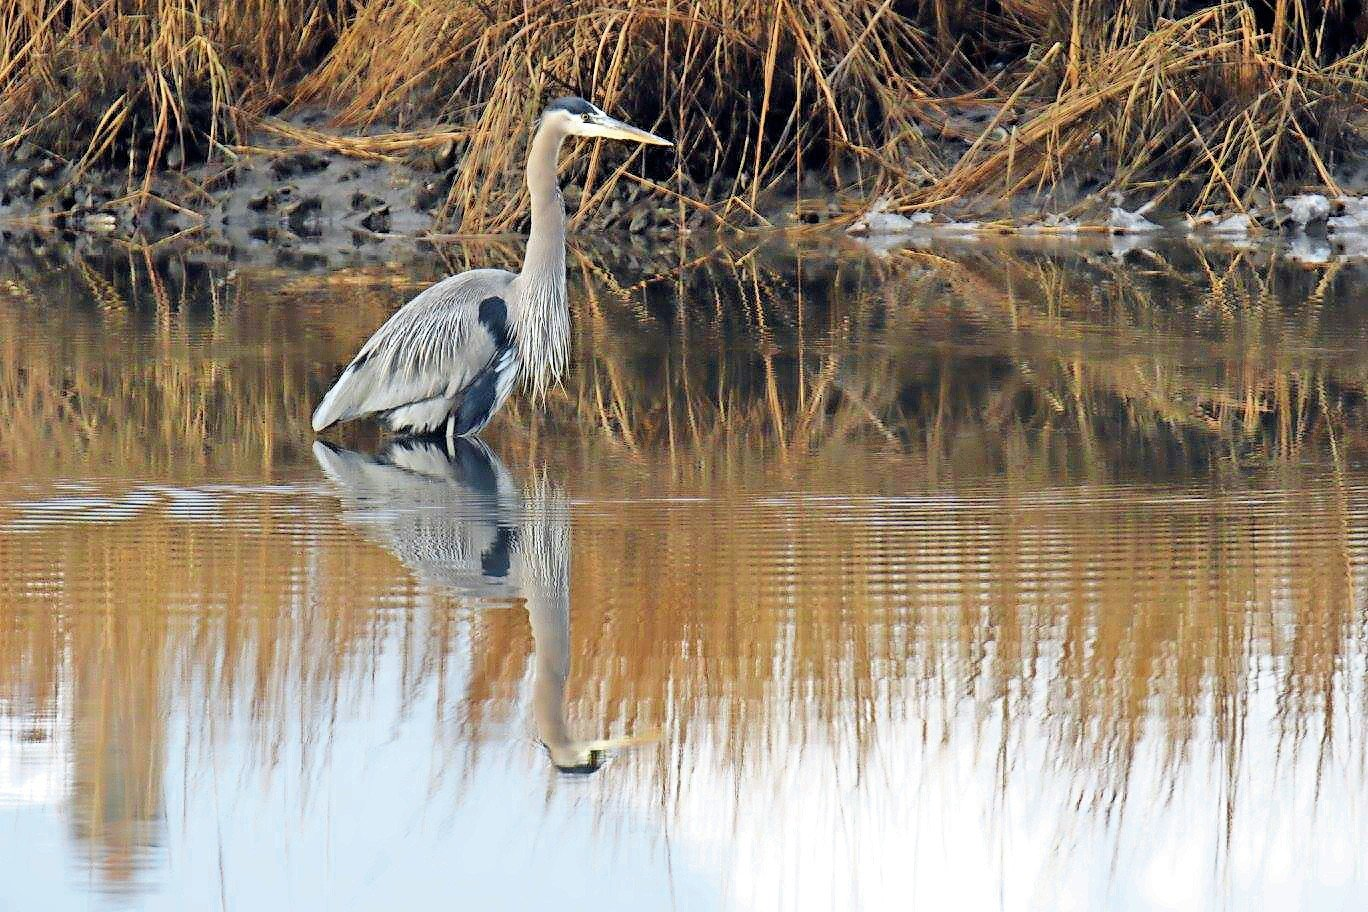 Great blue herons can be frequently spotted there.